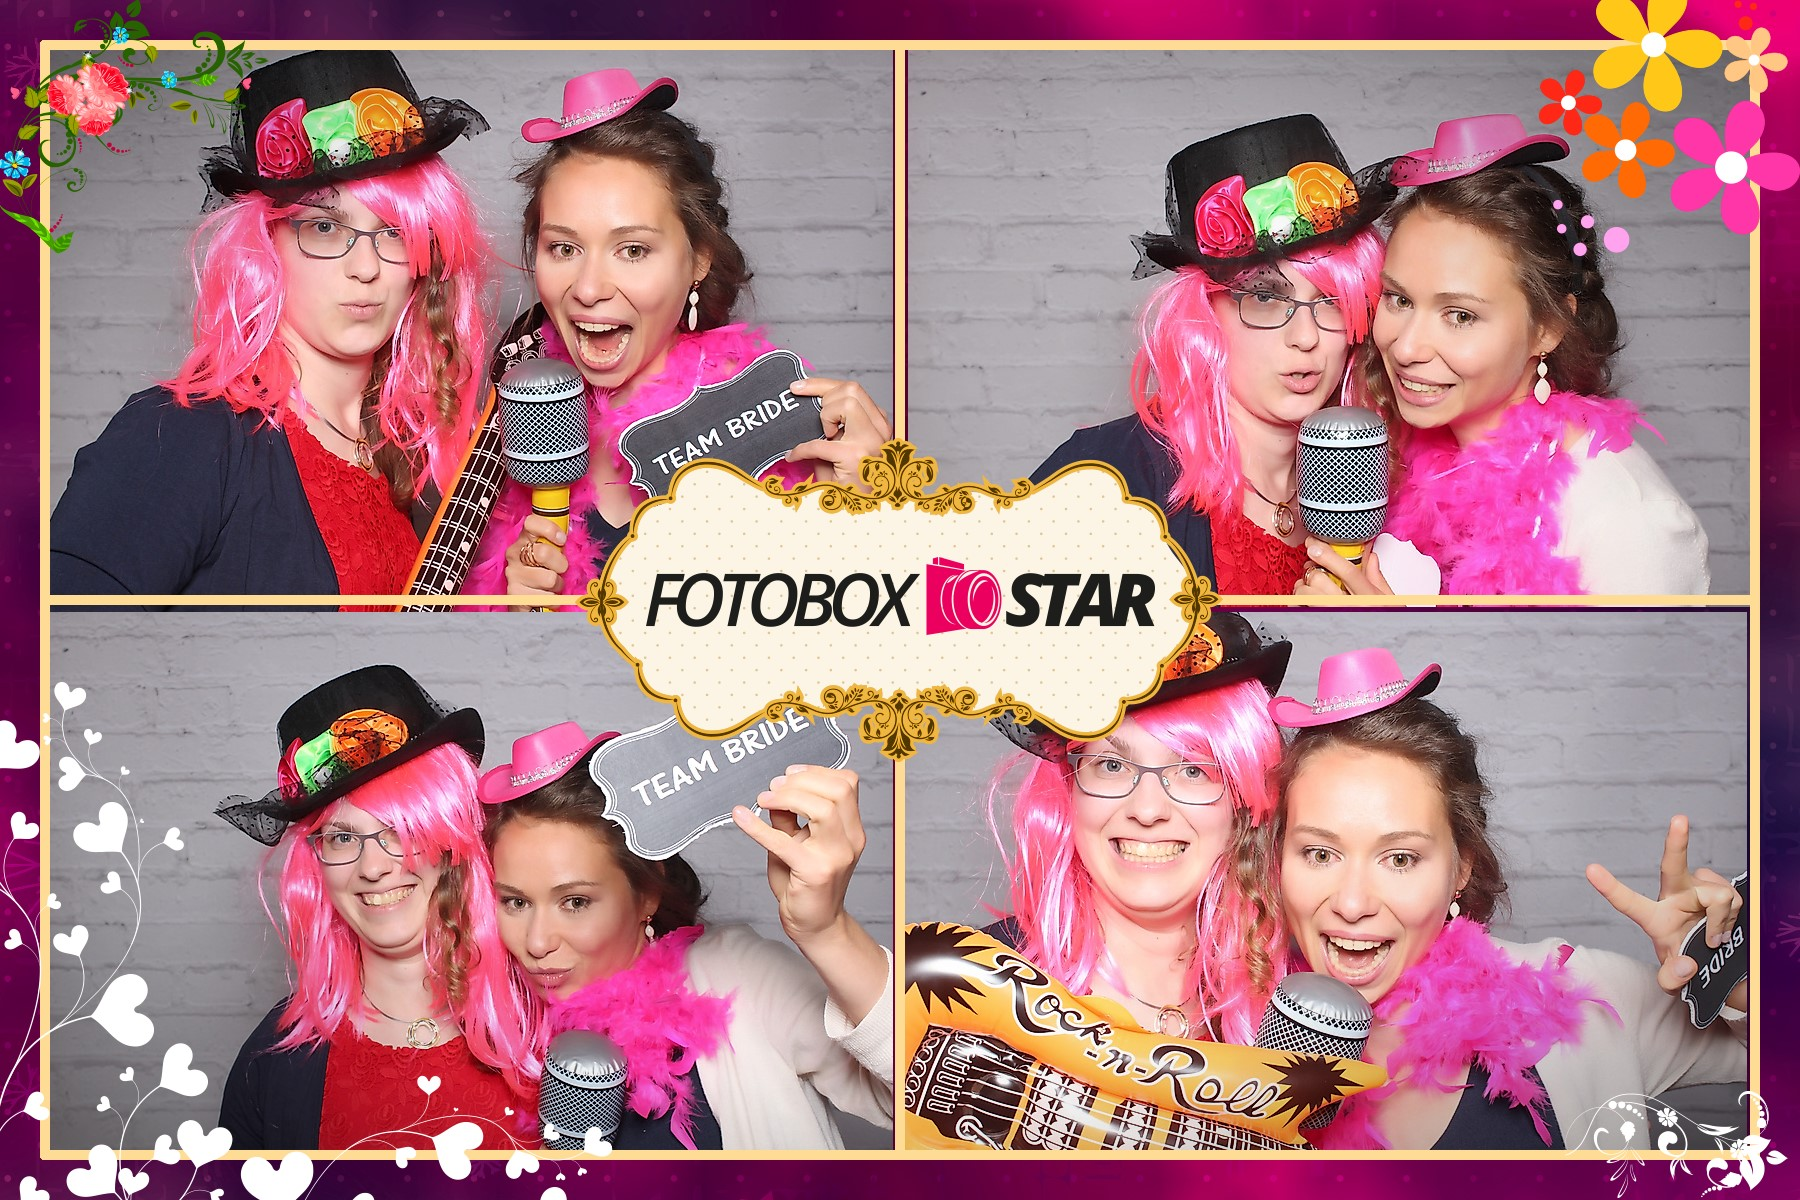 Fotobox-Star.de